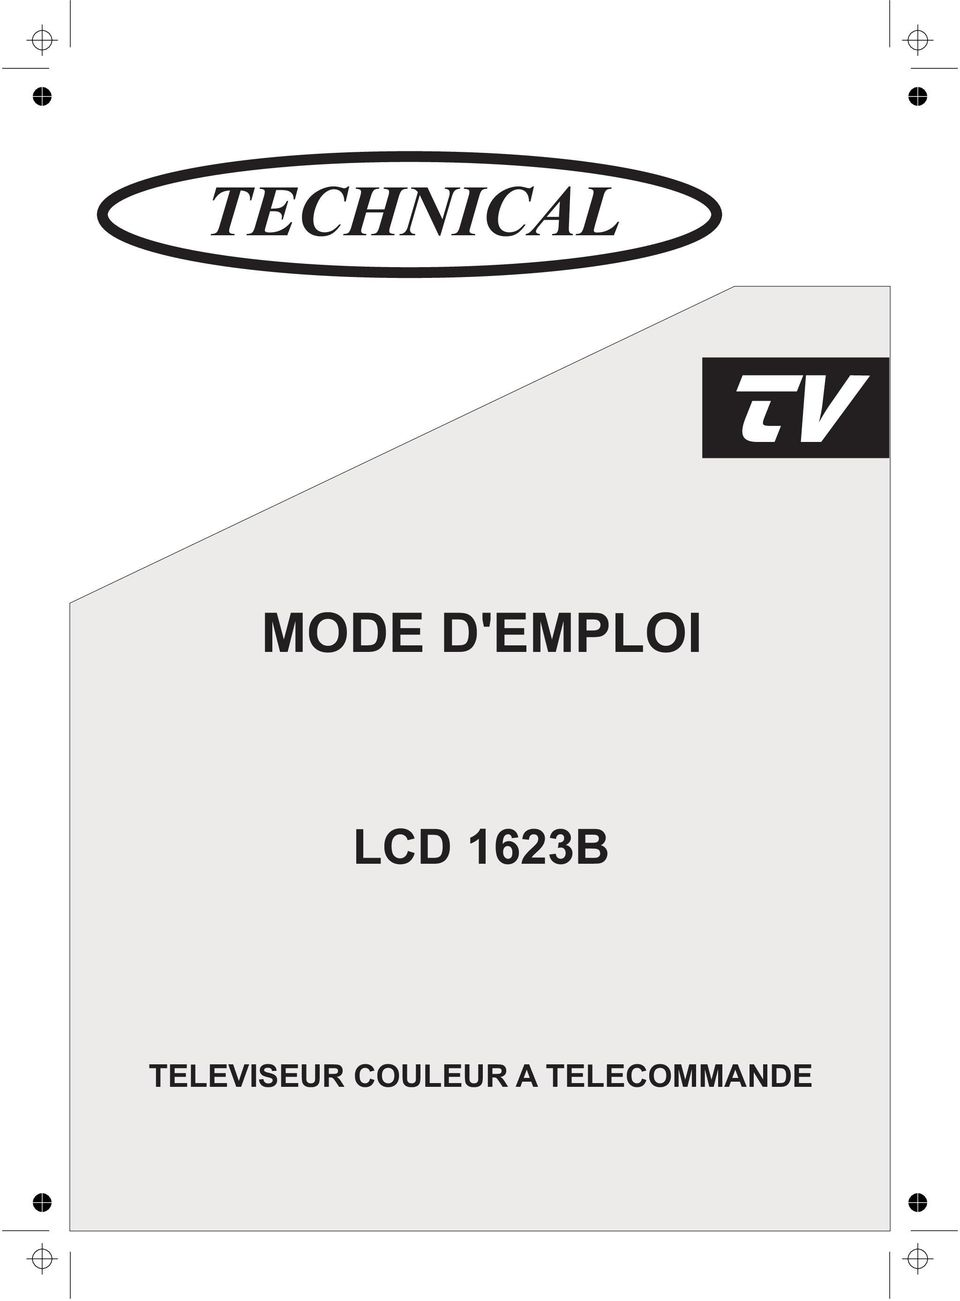 technical mode d 39 emploi lcd 1623b televiseur couleur a telecommande pdf. Black Bedroom Furniture Sets. Home Design Ideas